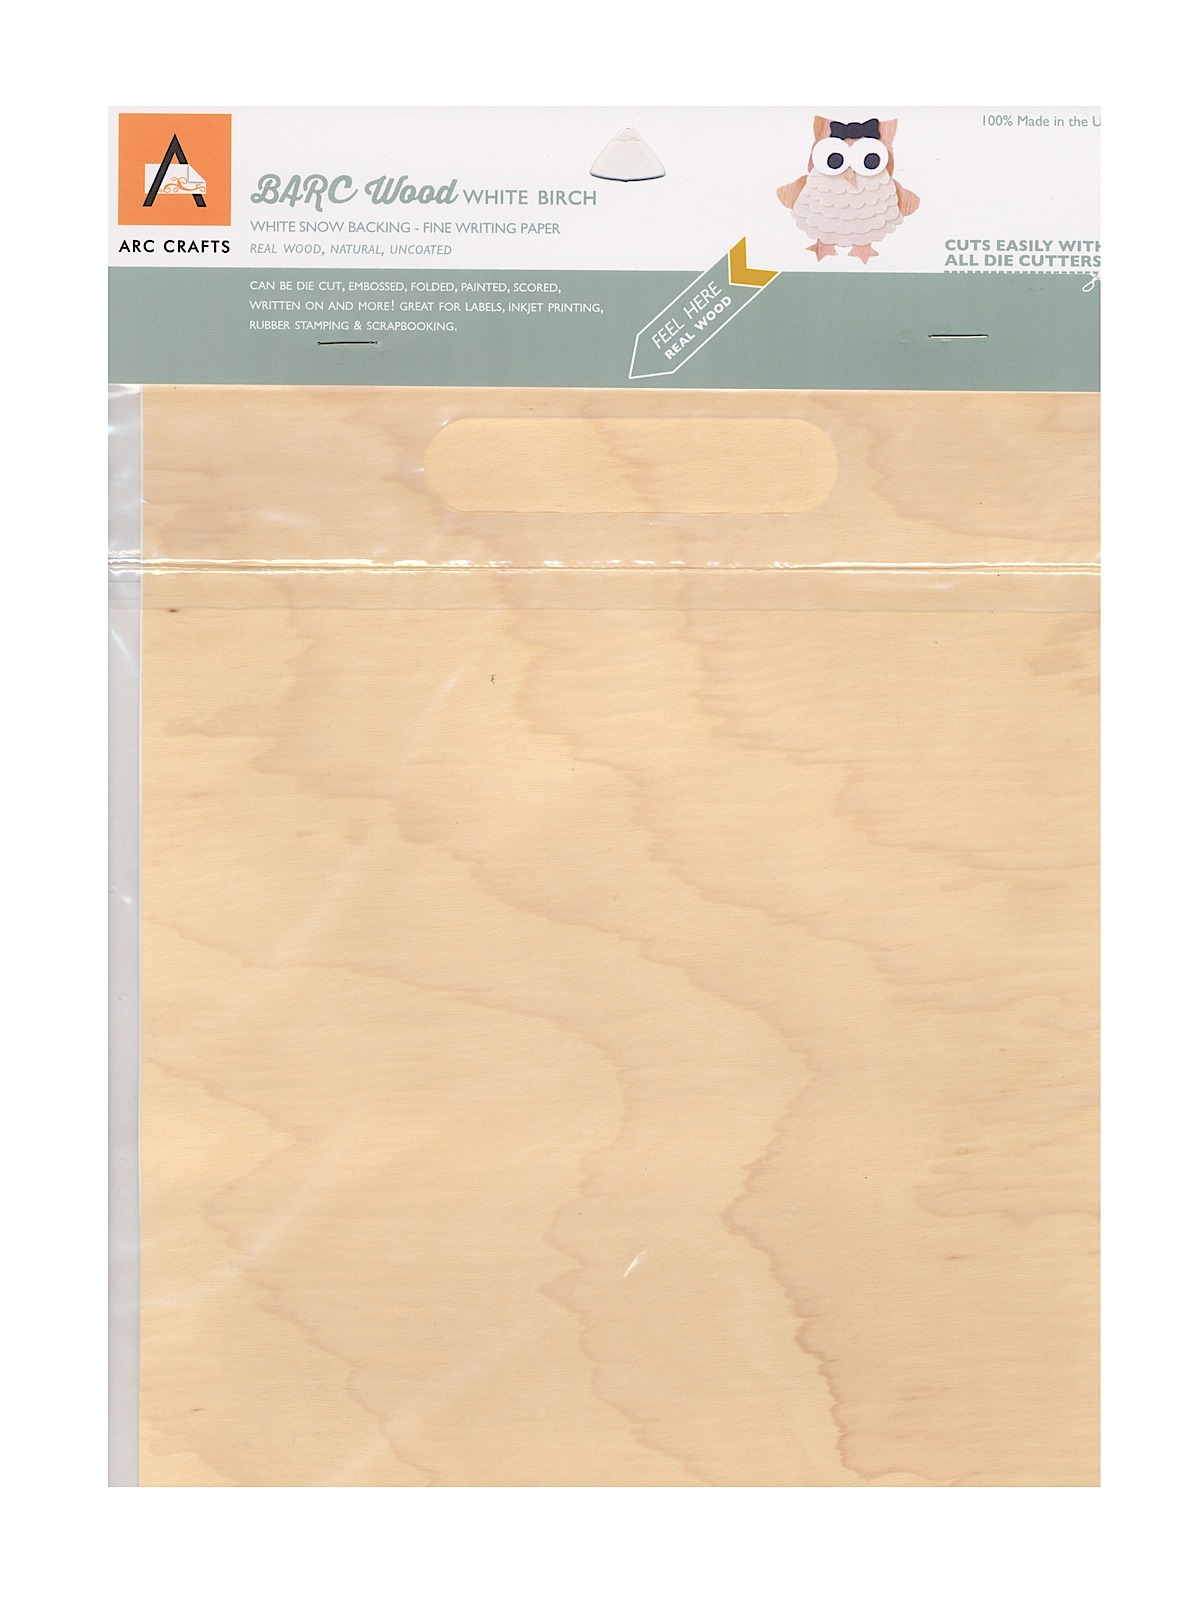 Real Wood Paper Sheets White Birch 8 1 2 In. X 11 In. Adhesive Backing